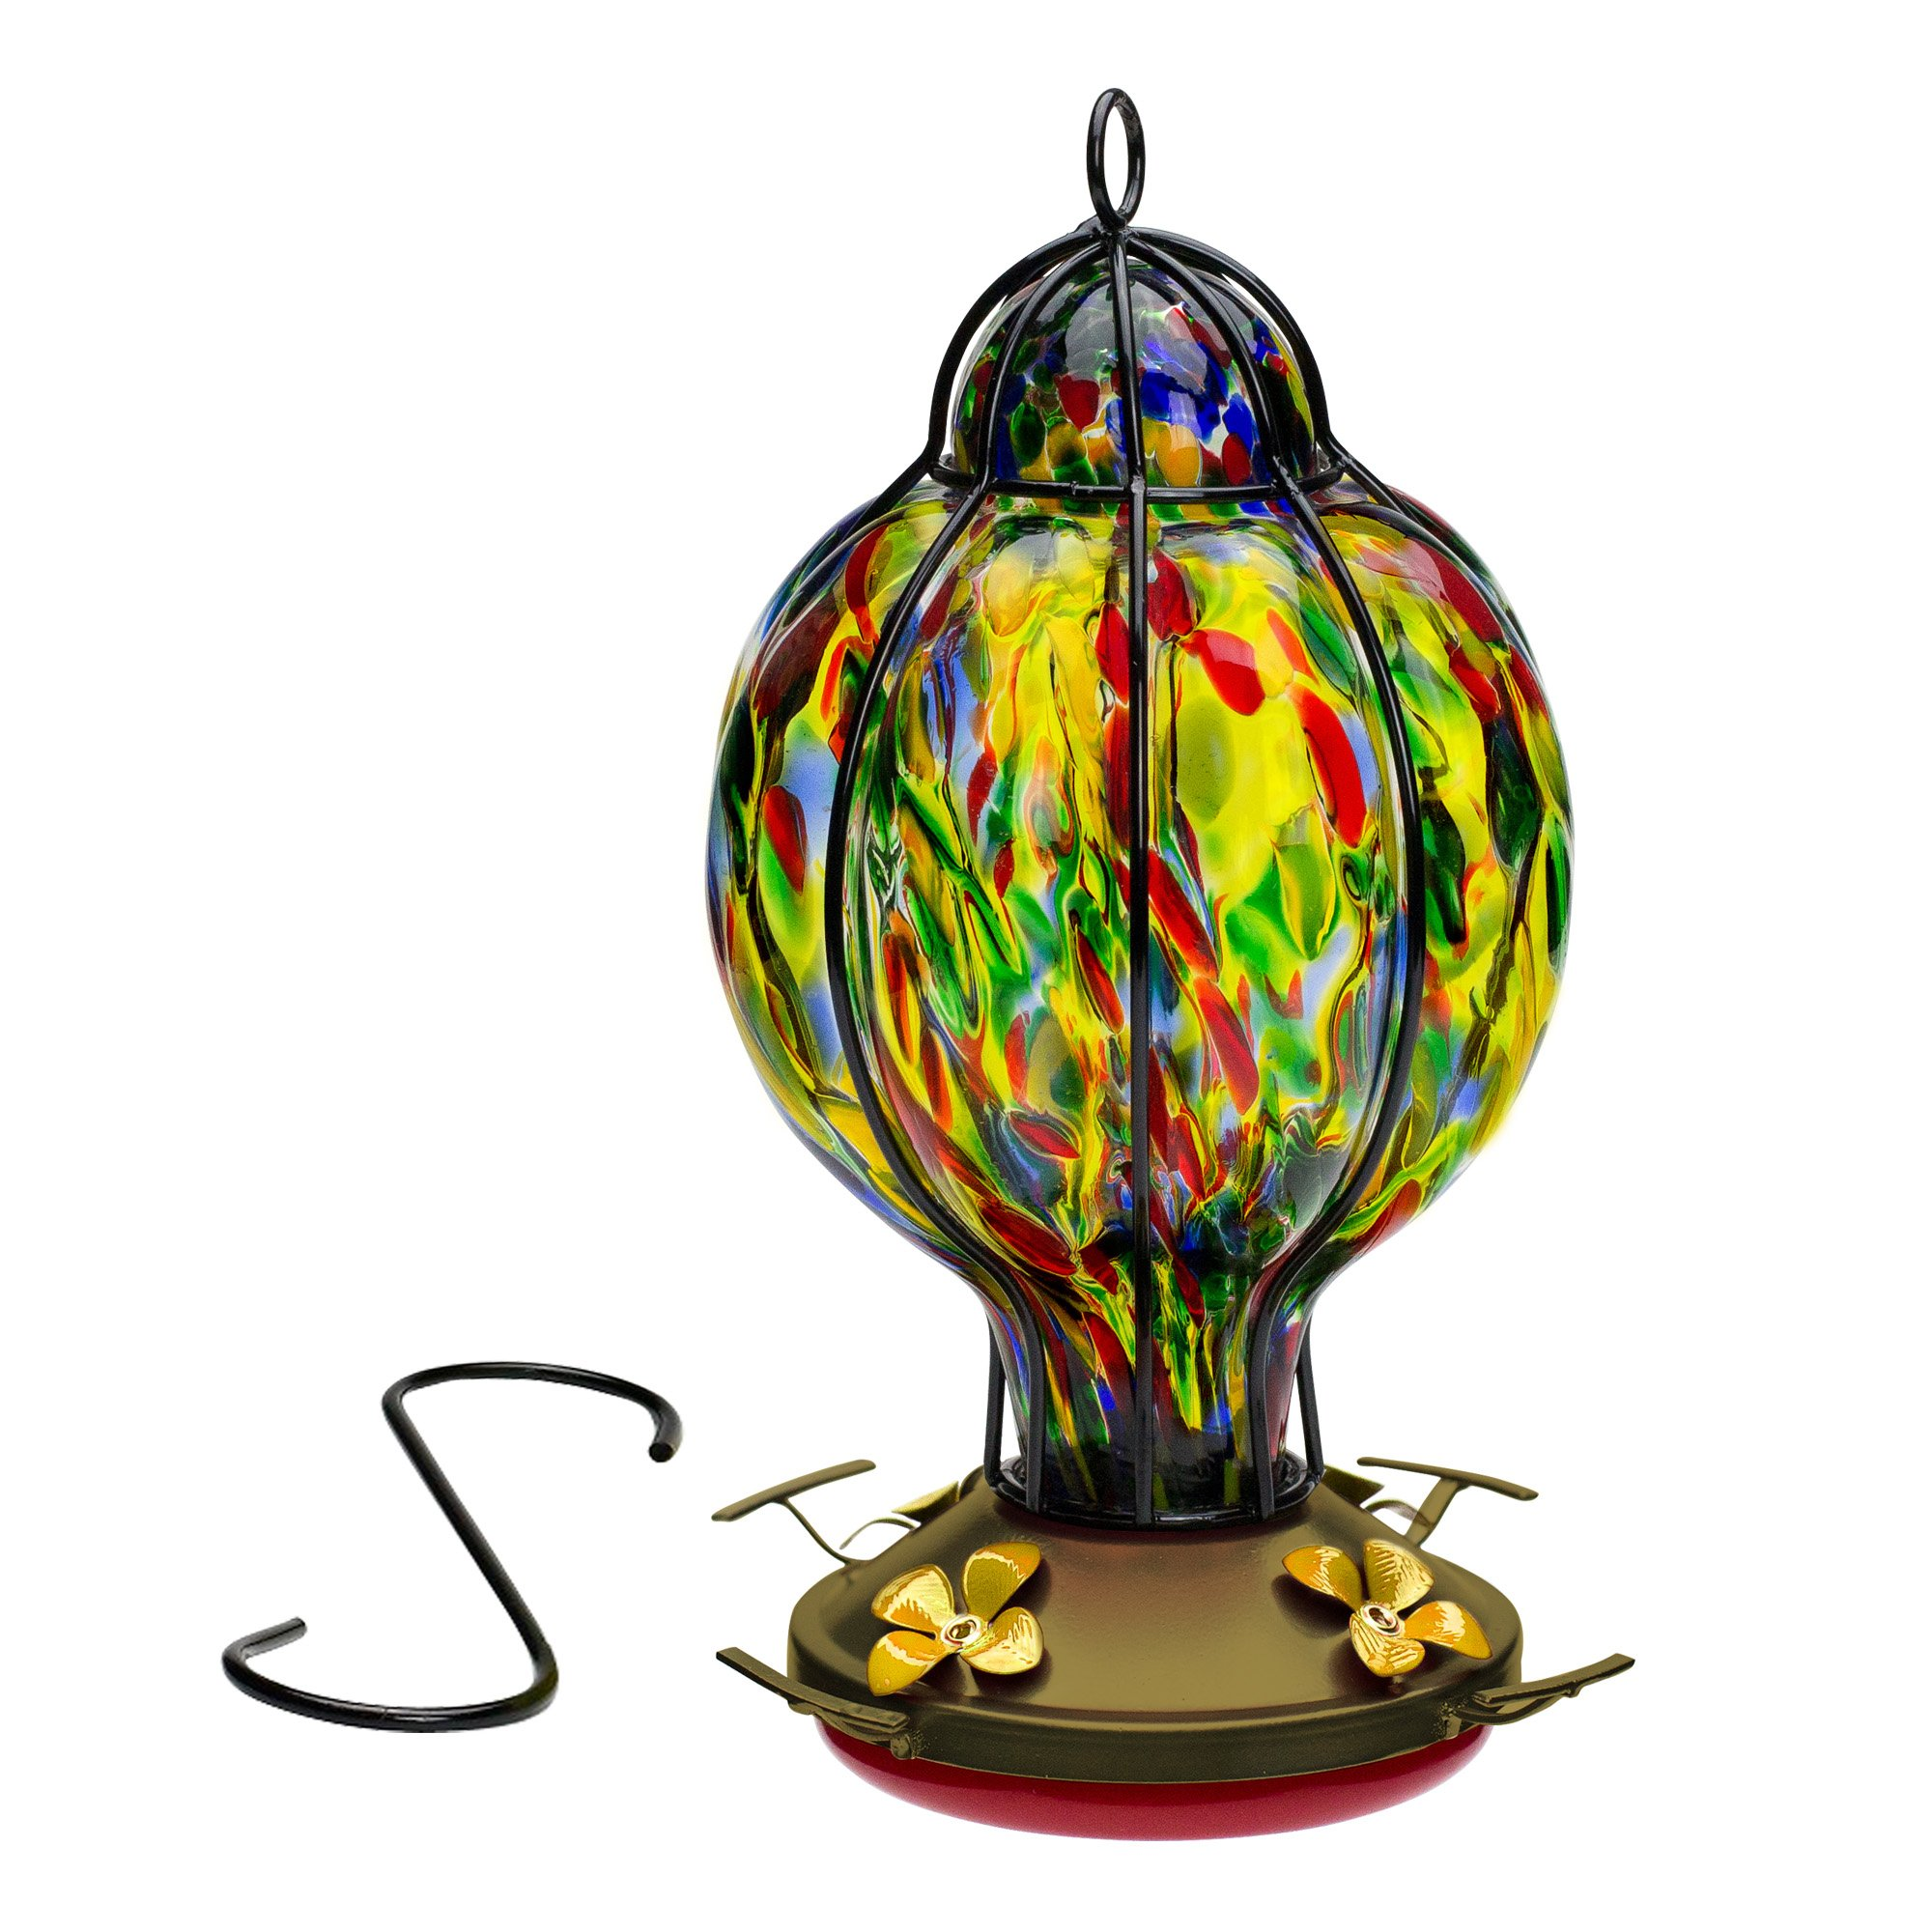 Best Home Products HUMMINGBIRD FEEDER with Perch - Hand-Blown Glass Feeders | Treat | (by (Multi-Color)